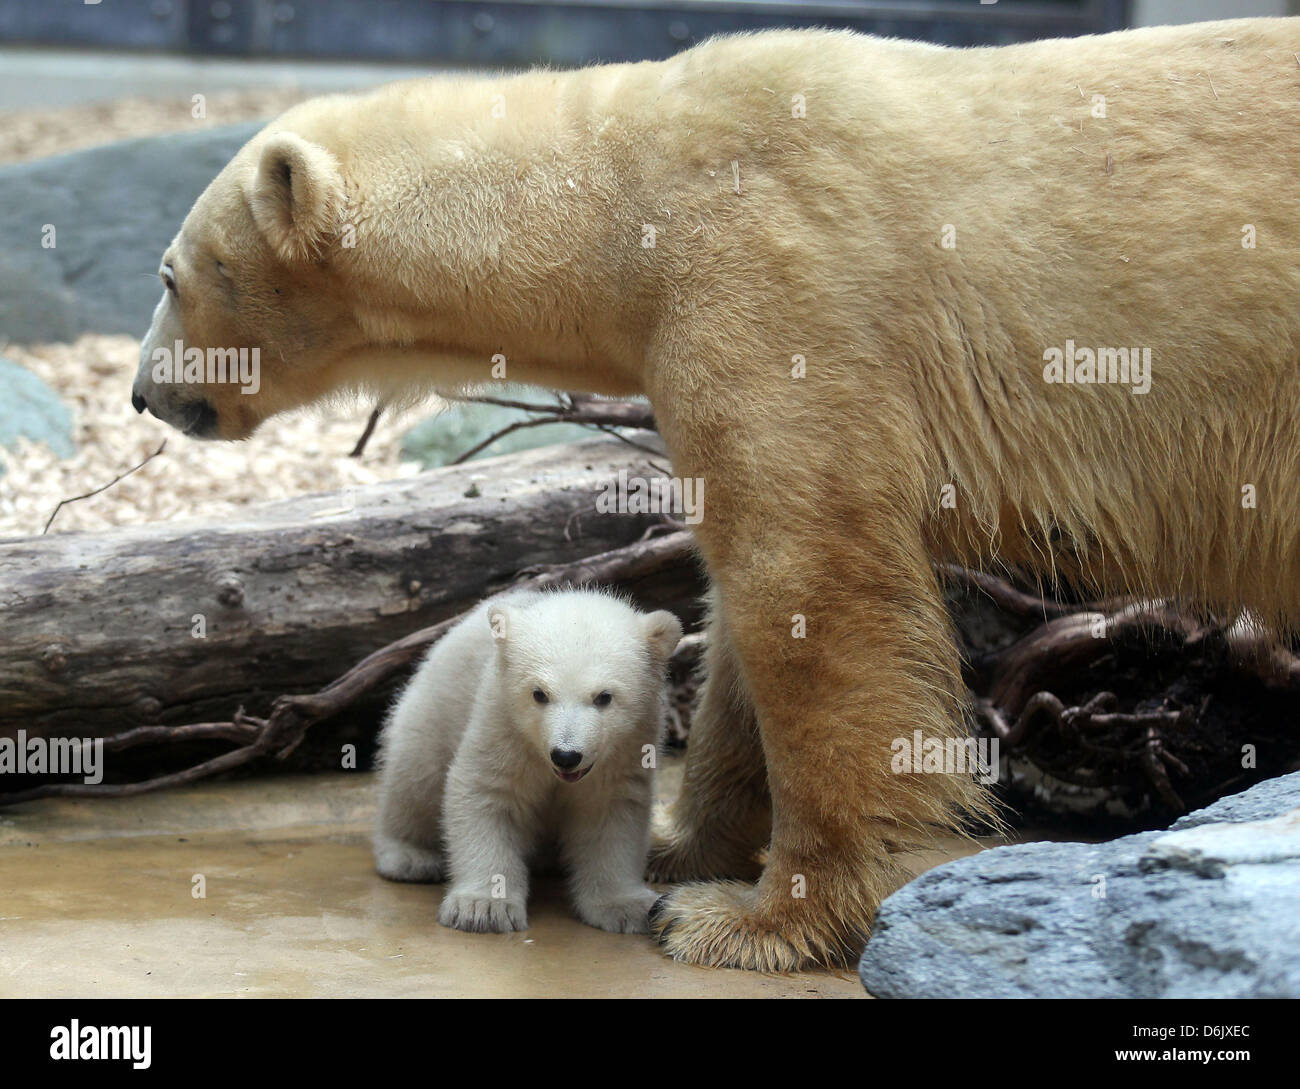 Cub with his two daddy bears